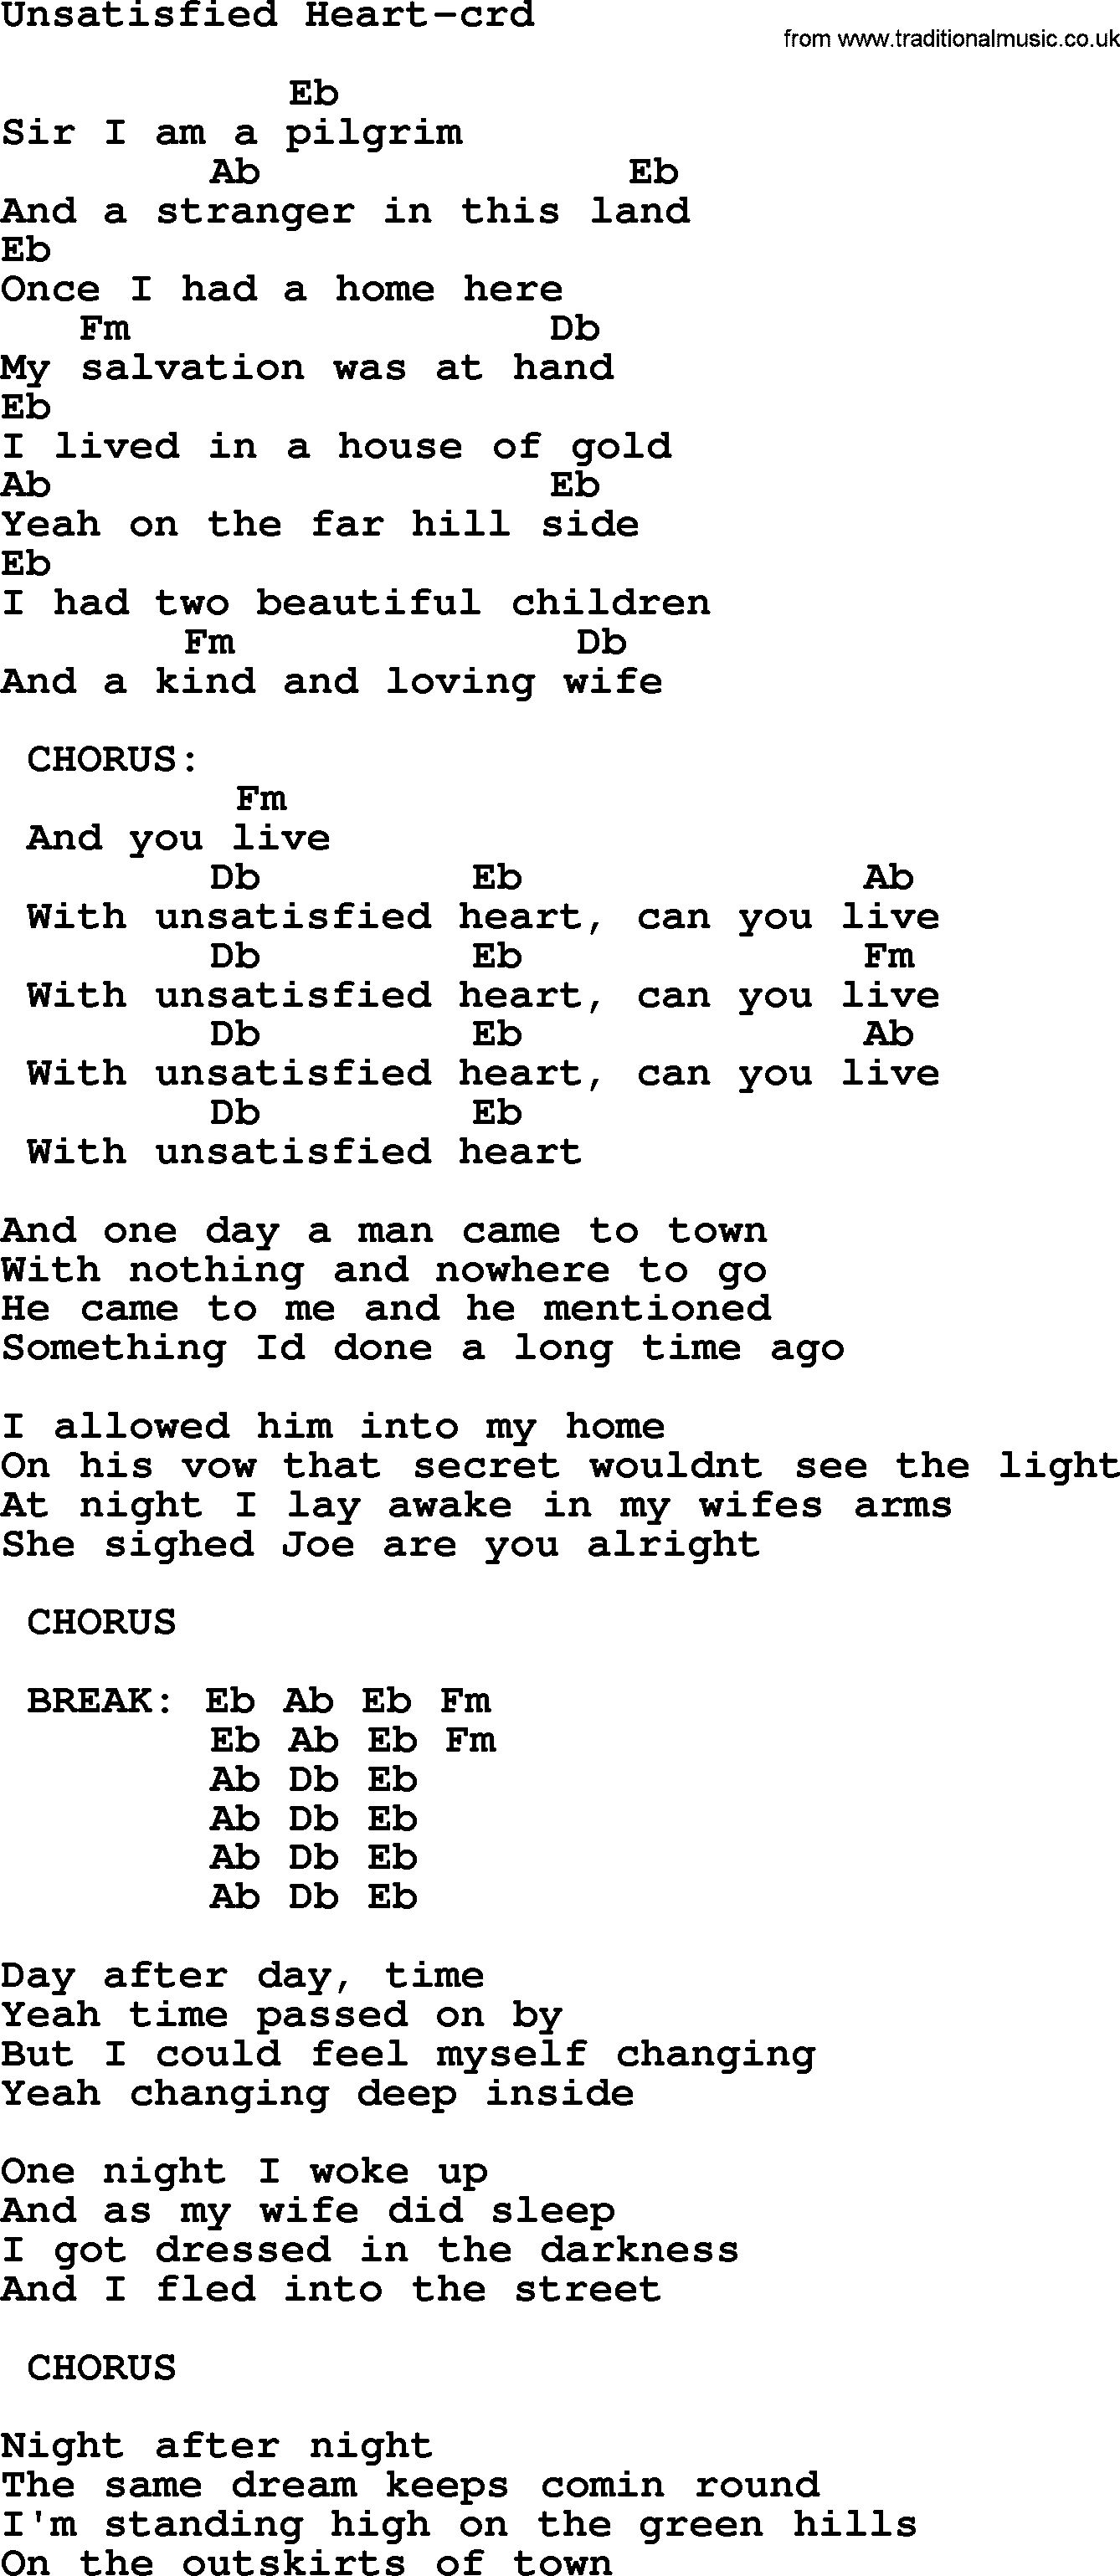 Springsteen song unsatisfied heart lyrics and chords bruce springsteen song unsatisfied heart lyrics and chords hexwebz Choice Image